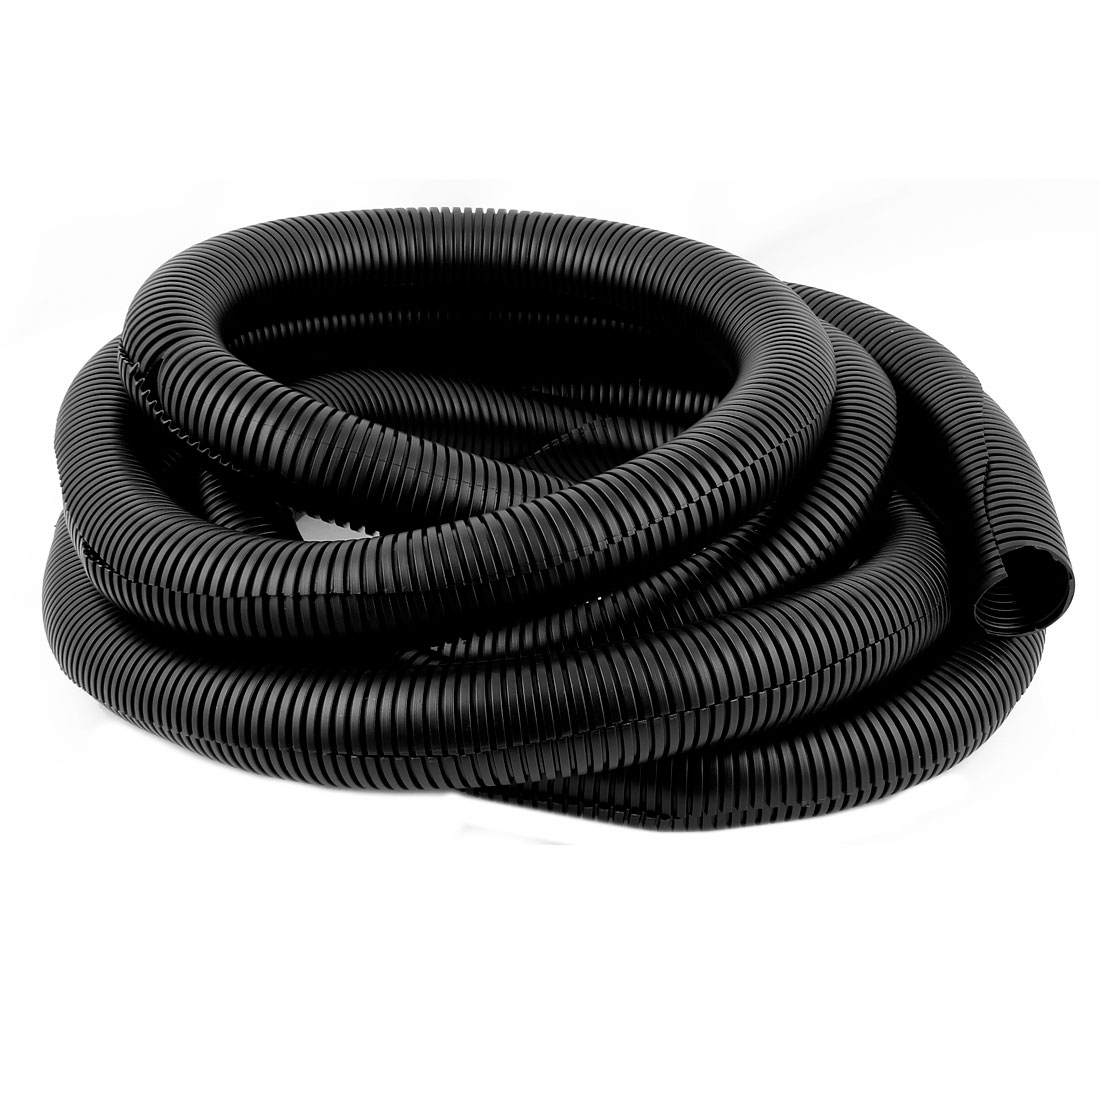 Black 42mm x 35mm Flexible Split Corrugated Tubing Wire Cable Conduit Tube Pipe 4.5M